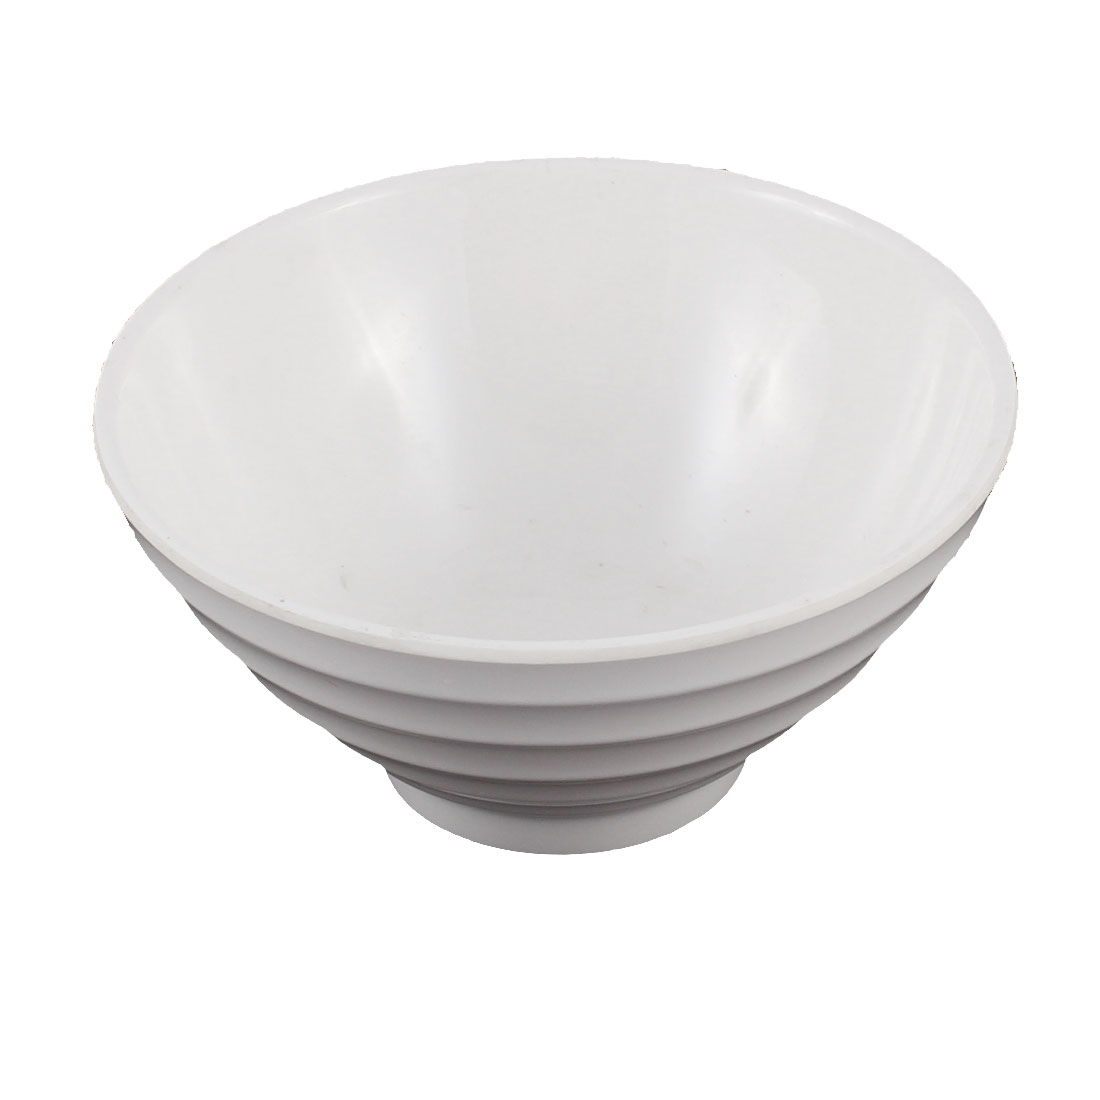 Tableware Plastic Round Shaped Food Rice Bowl White